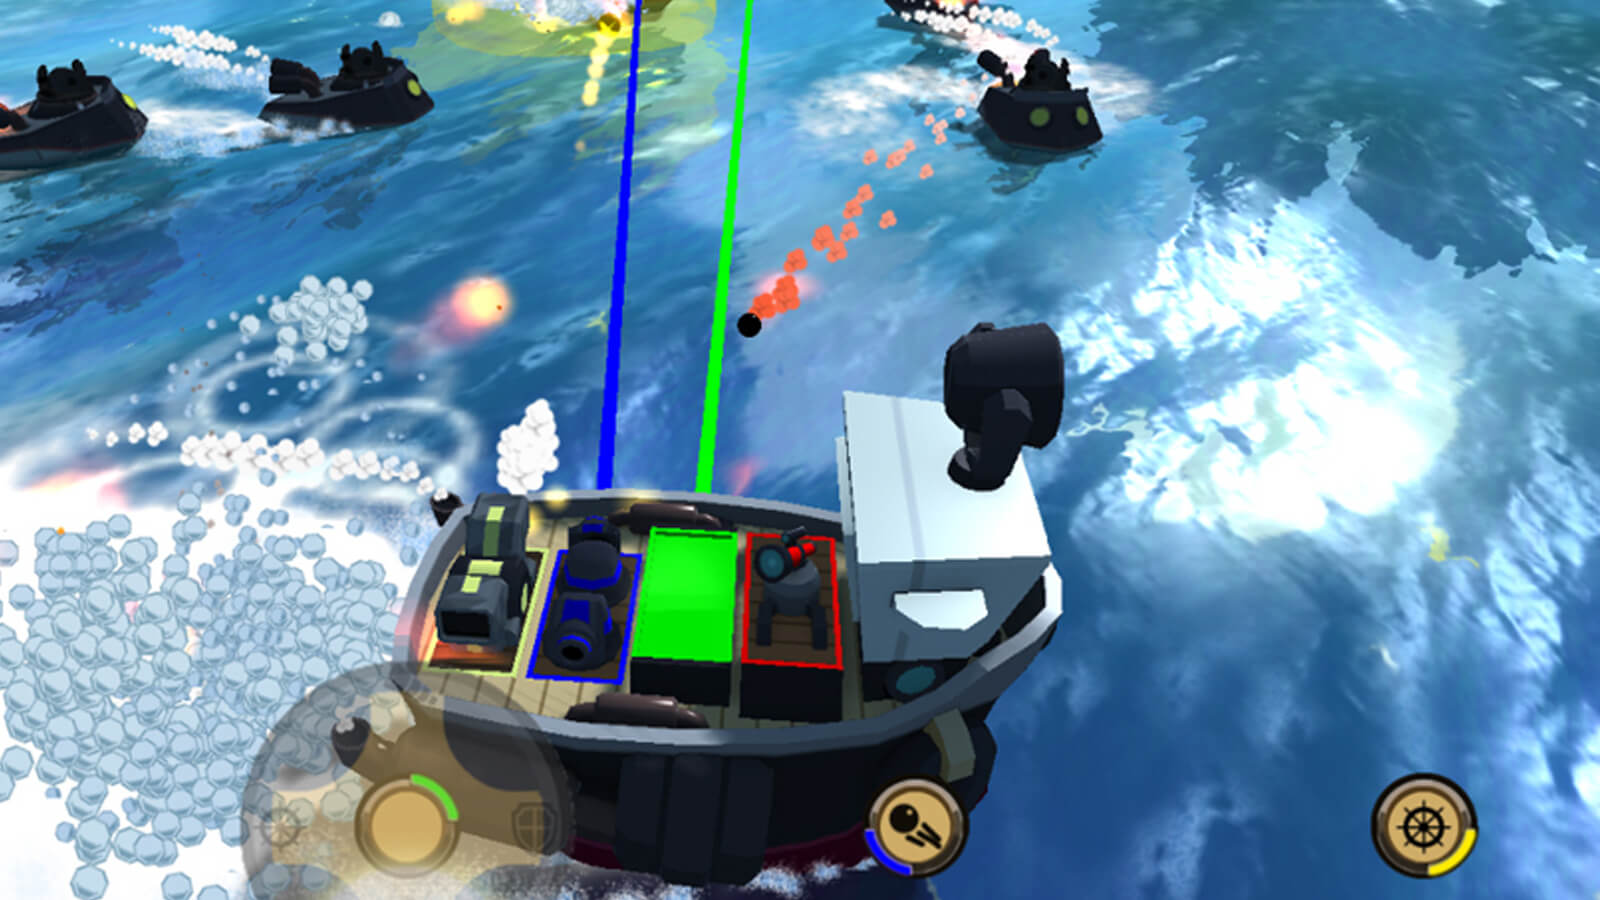 The green and blue players on fire lasers at enemies who are shooting cannon balls at the players' boat